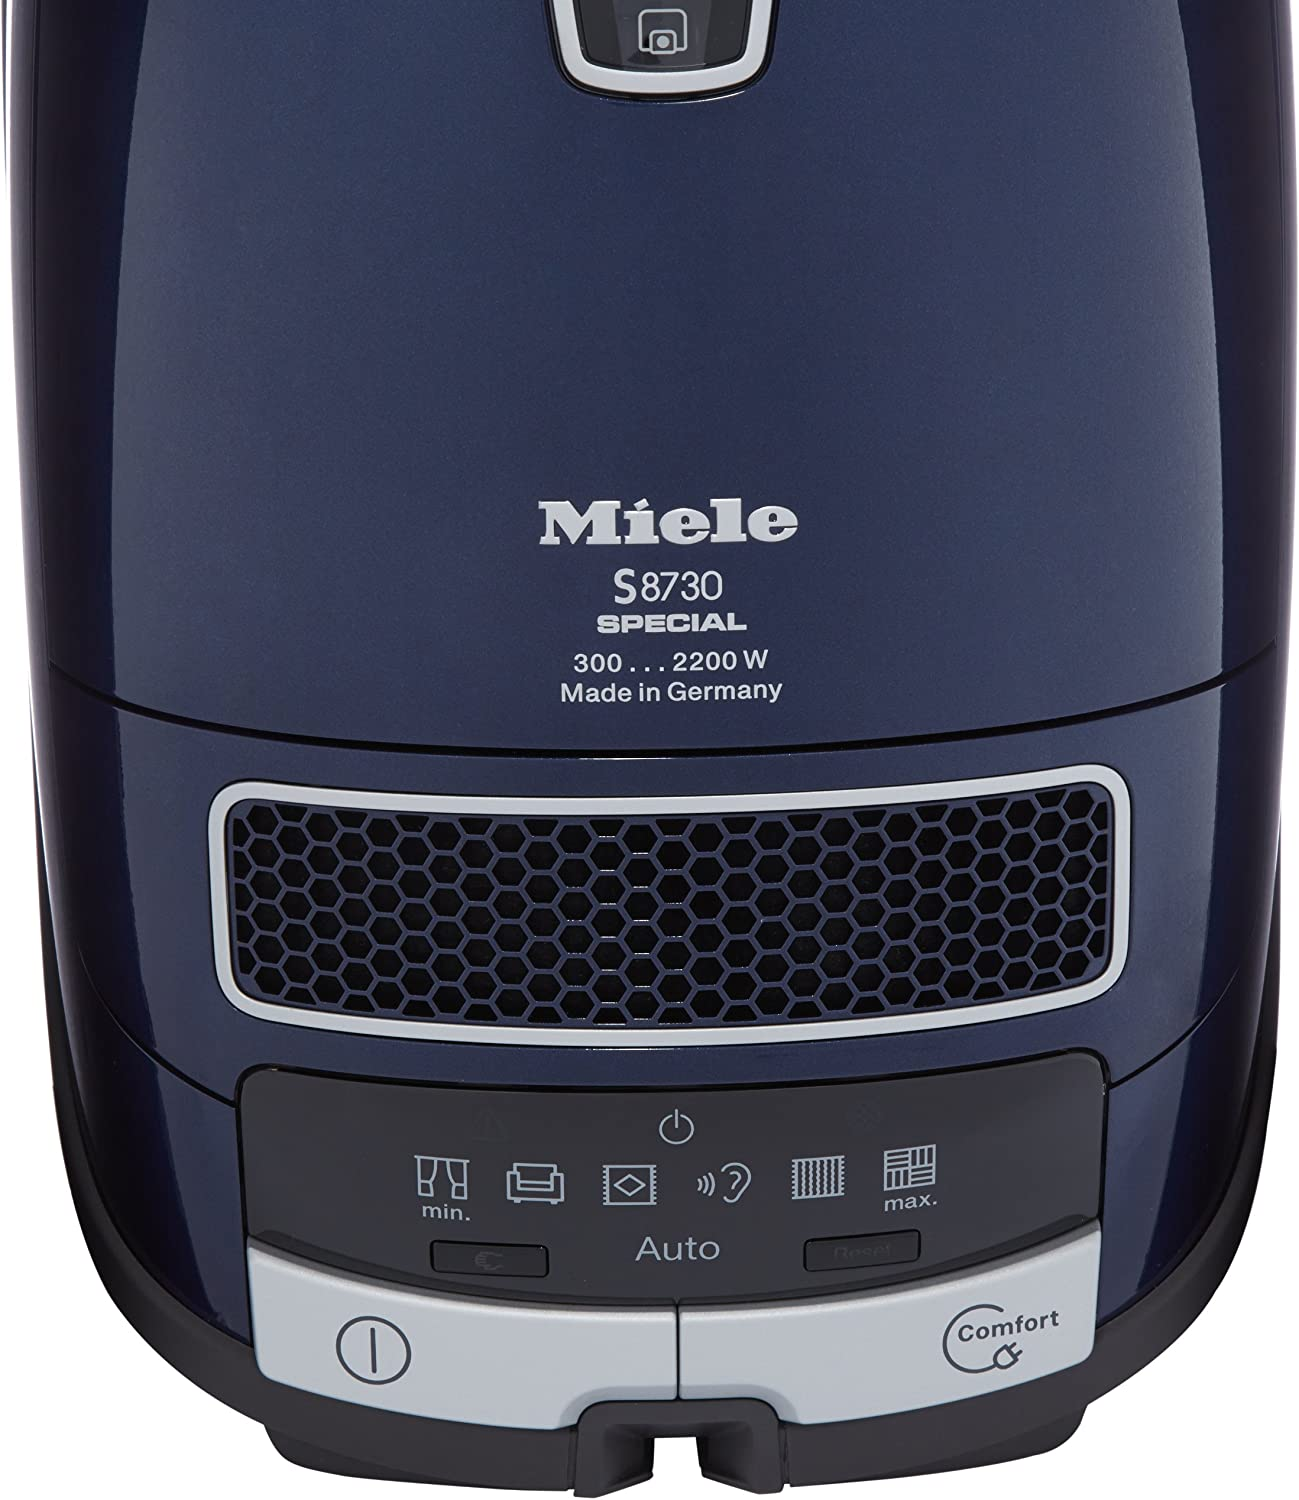 Miele S 8730 Special |